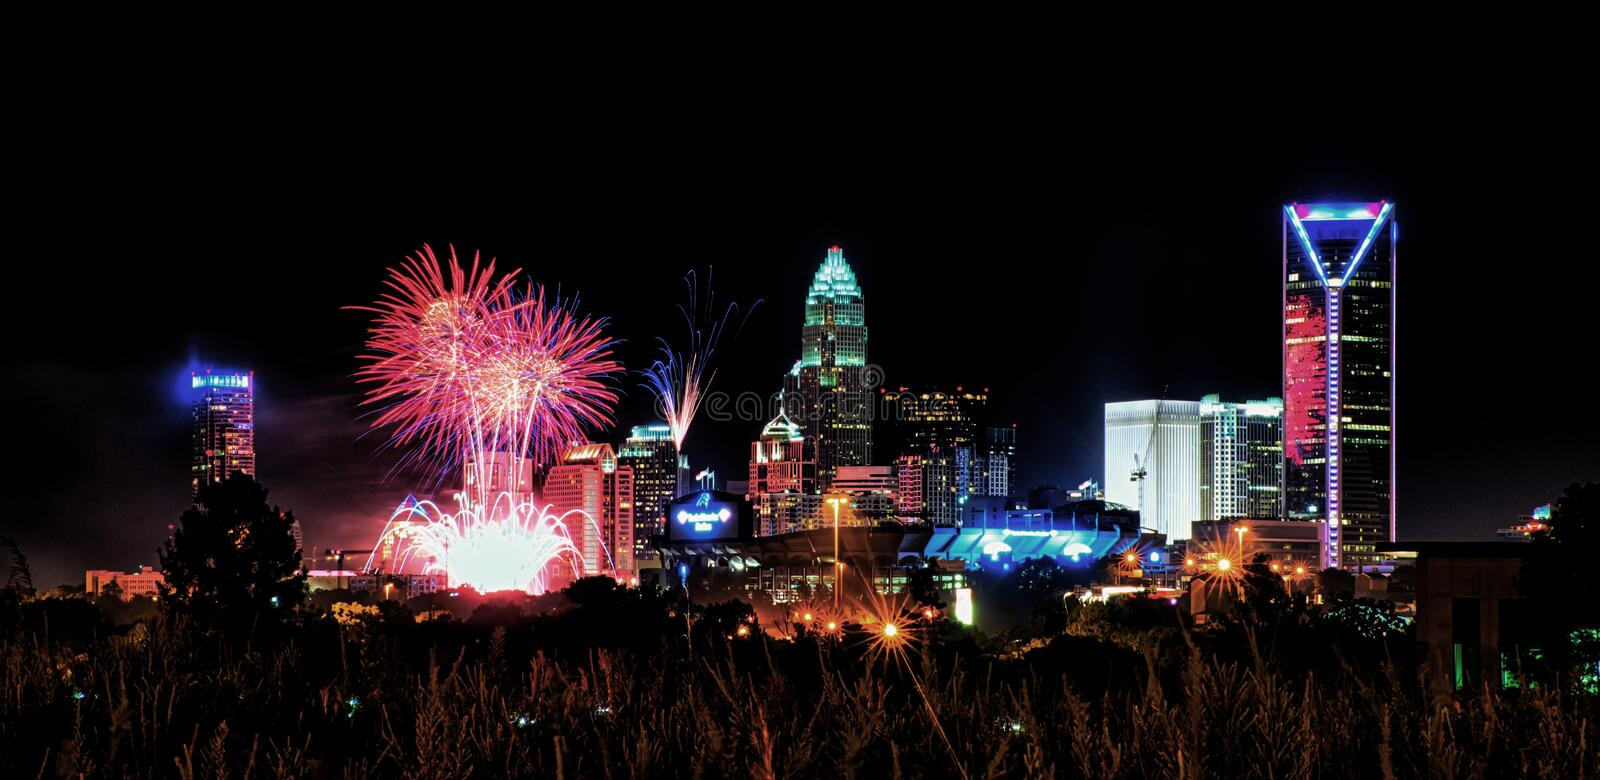 4th of july fireworks skyshow charlotte nc royalty free stock images